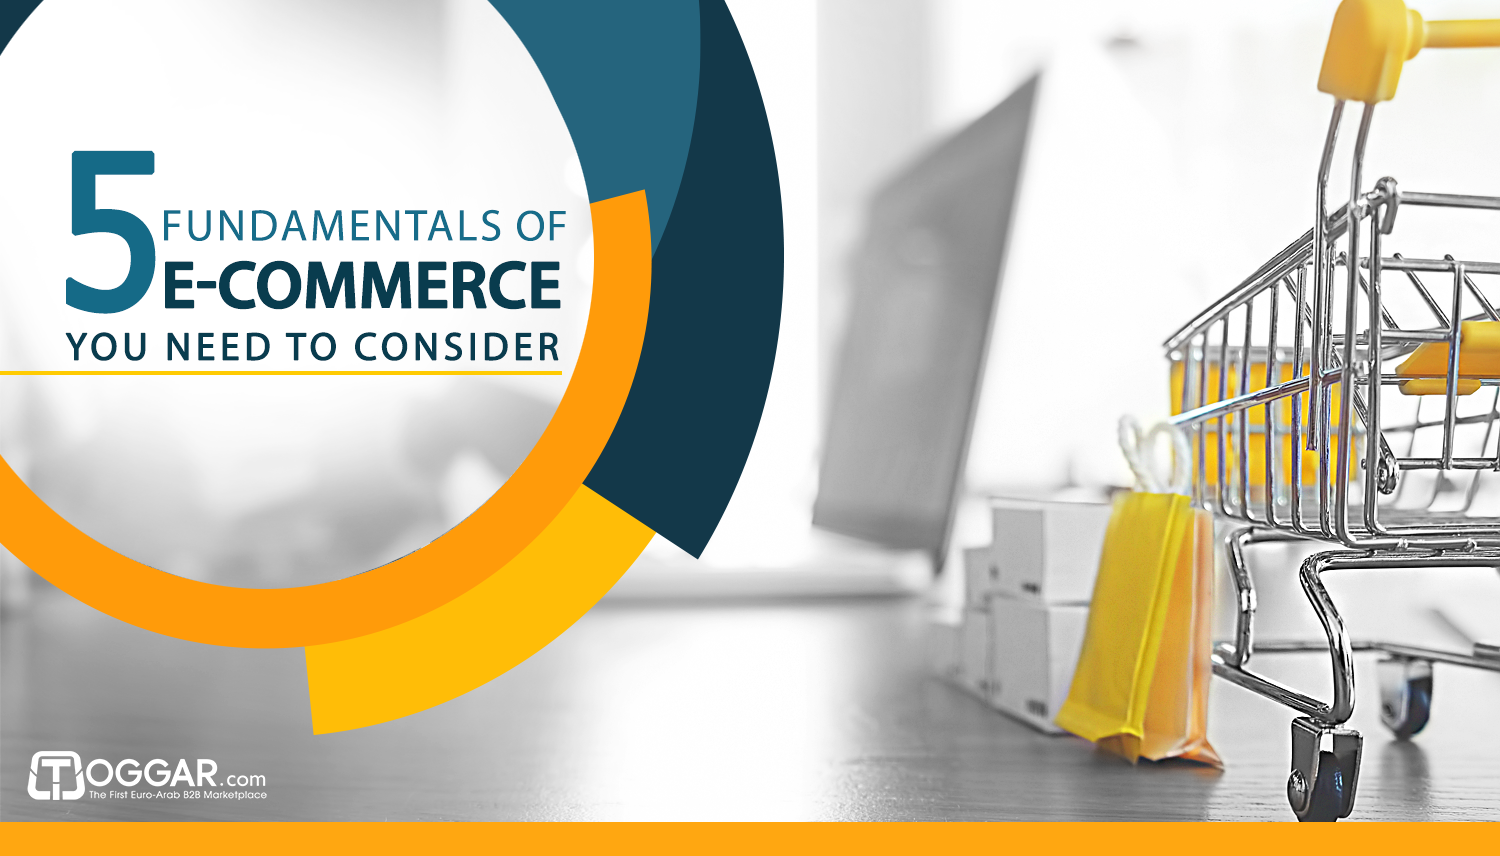 5 Fundamentals of E-Commerce You Need to Consider